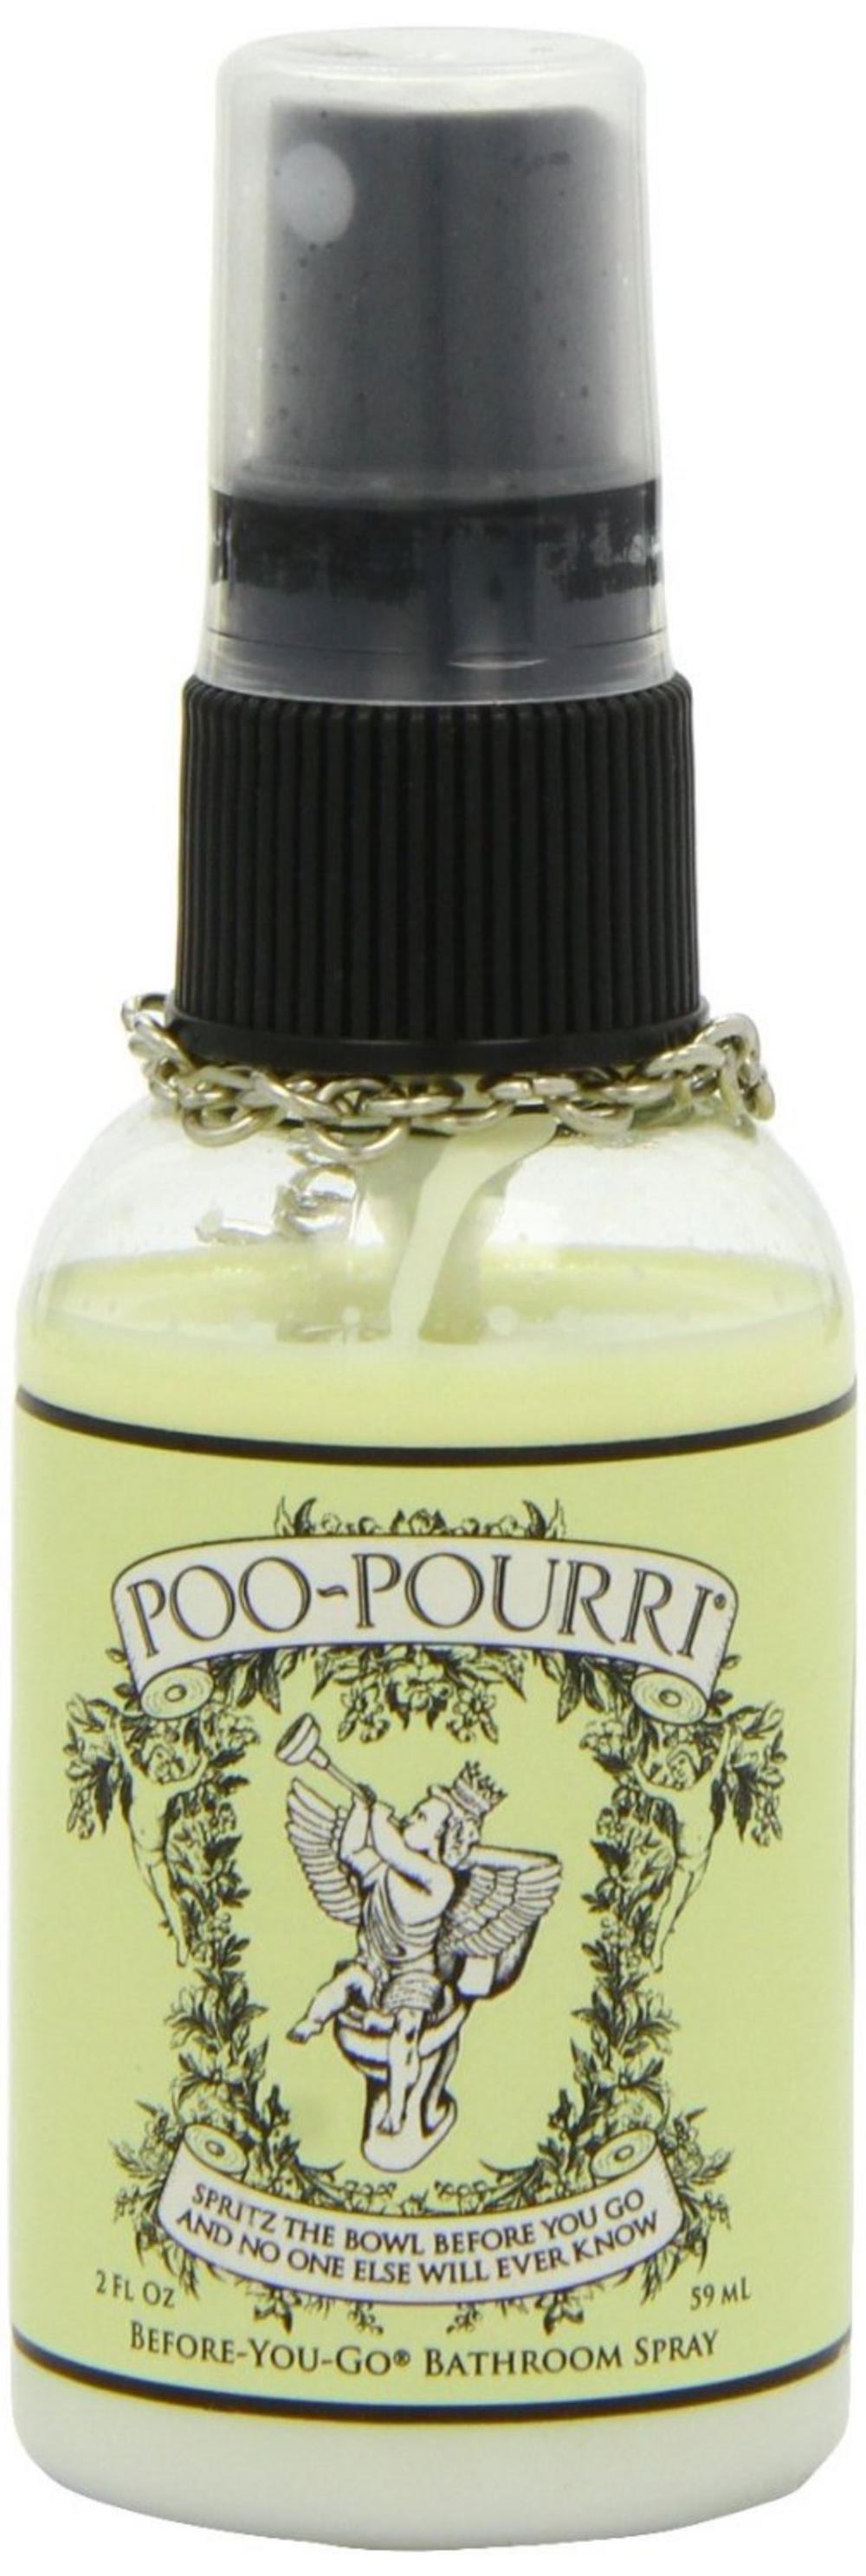 Poo Pourri Original Toilet Spray 2Oz - Ideal For A Gift-Dinner Party-Your Home